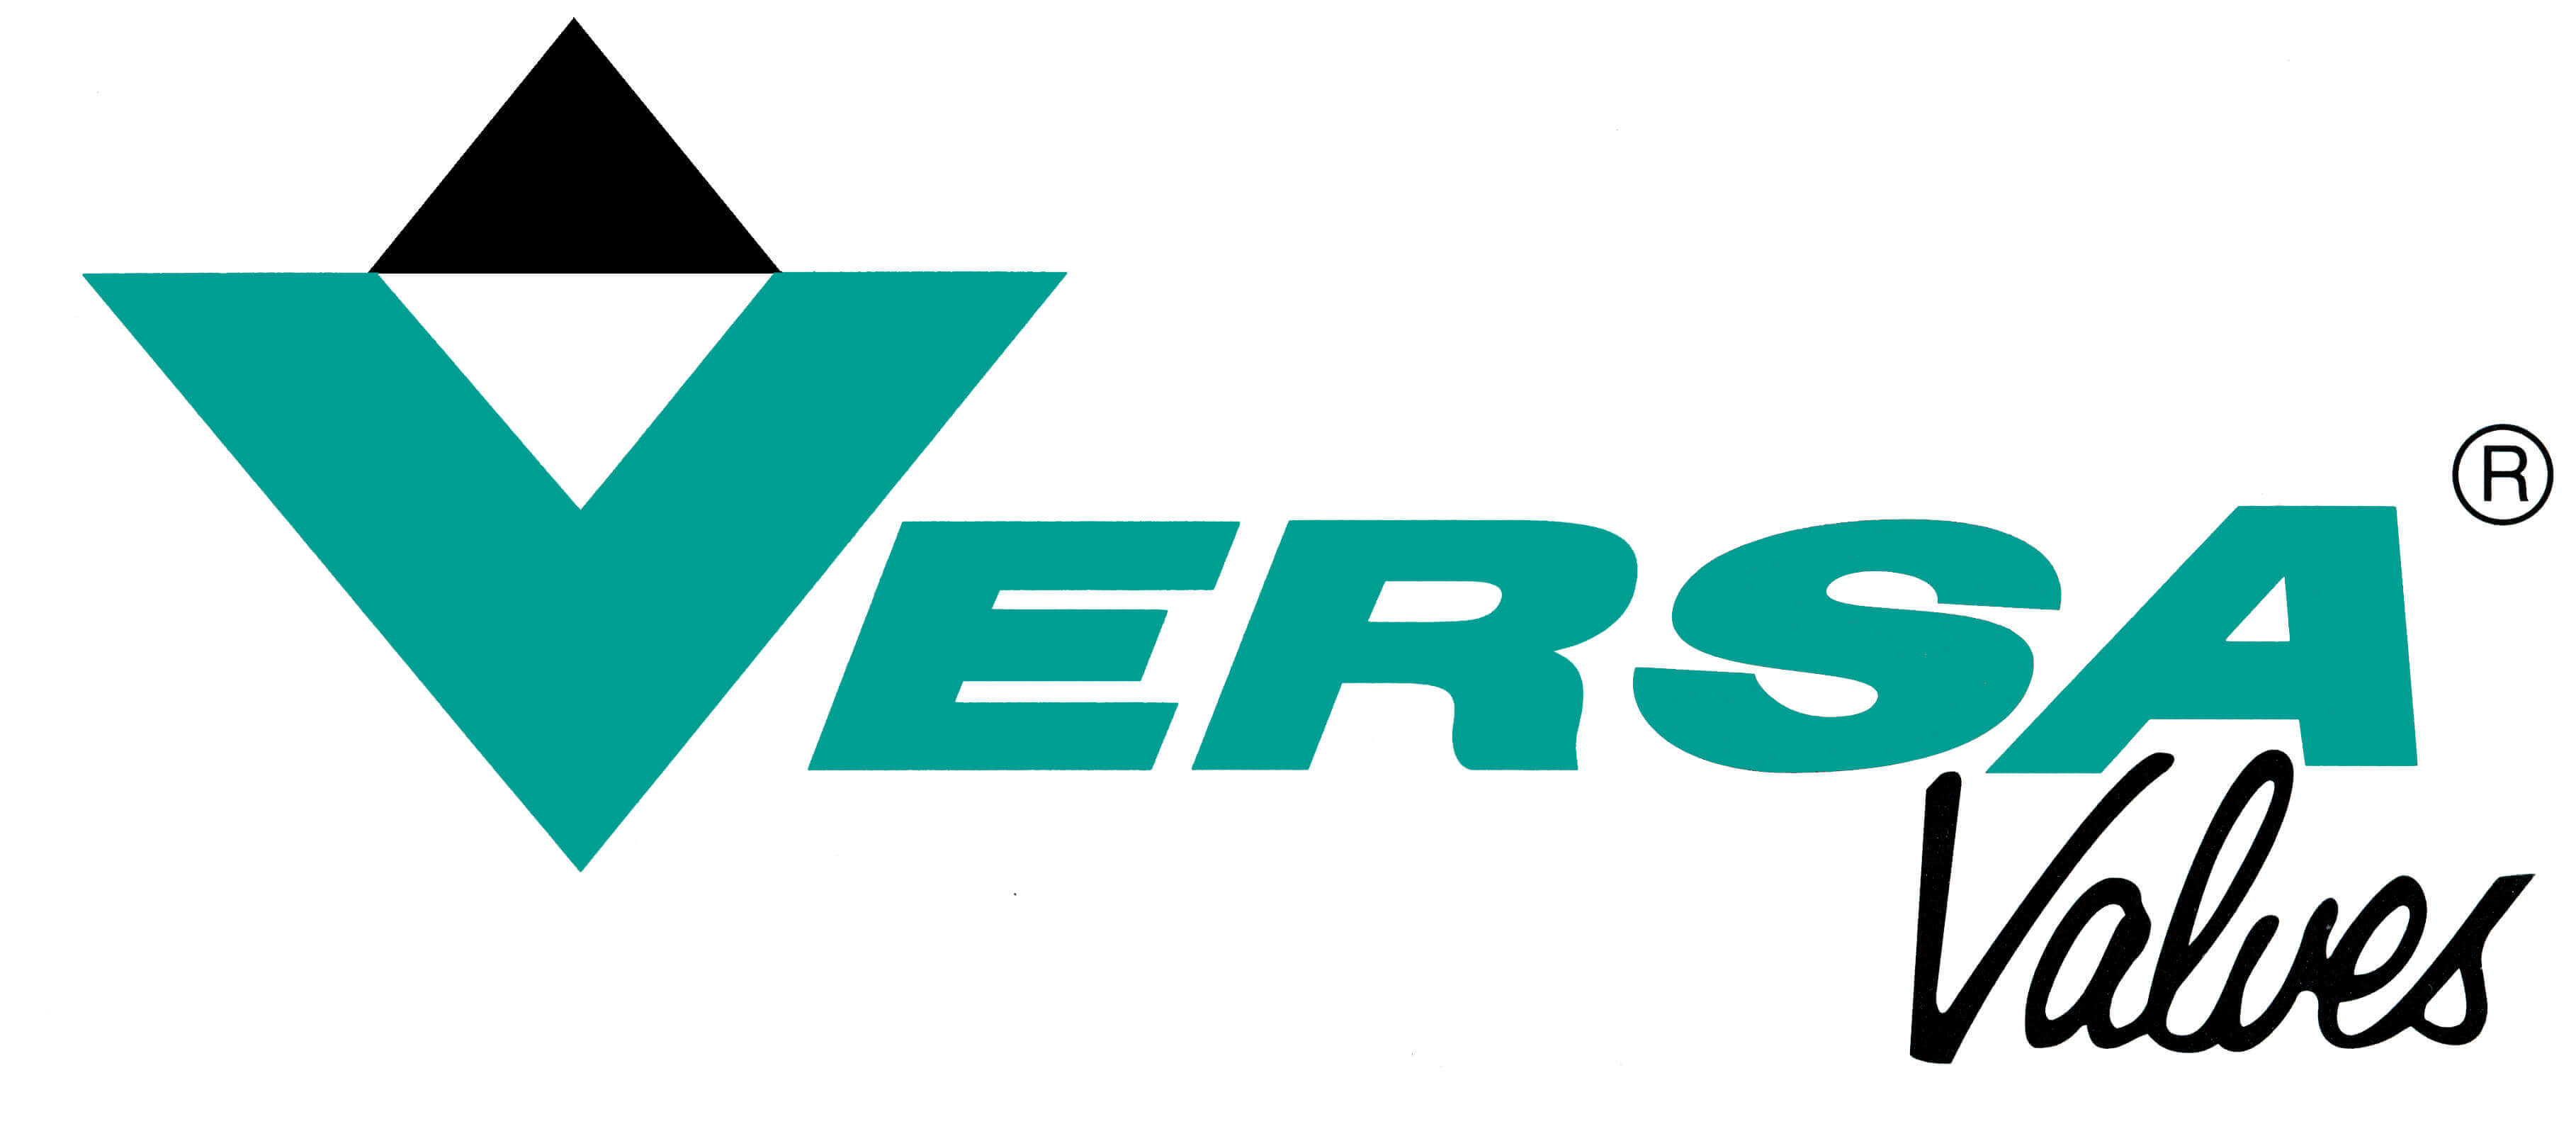 Versa Products Co., Inc.